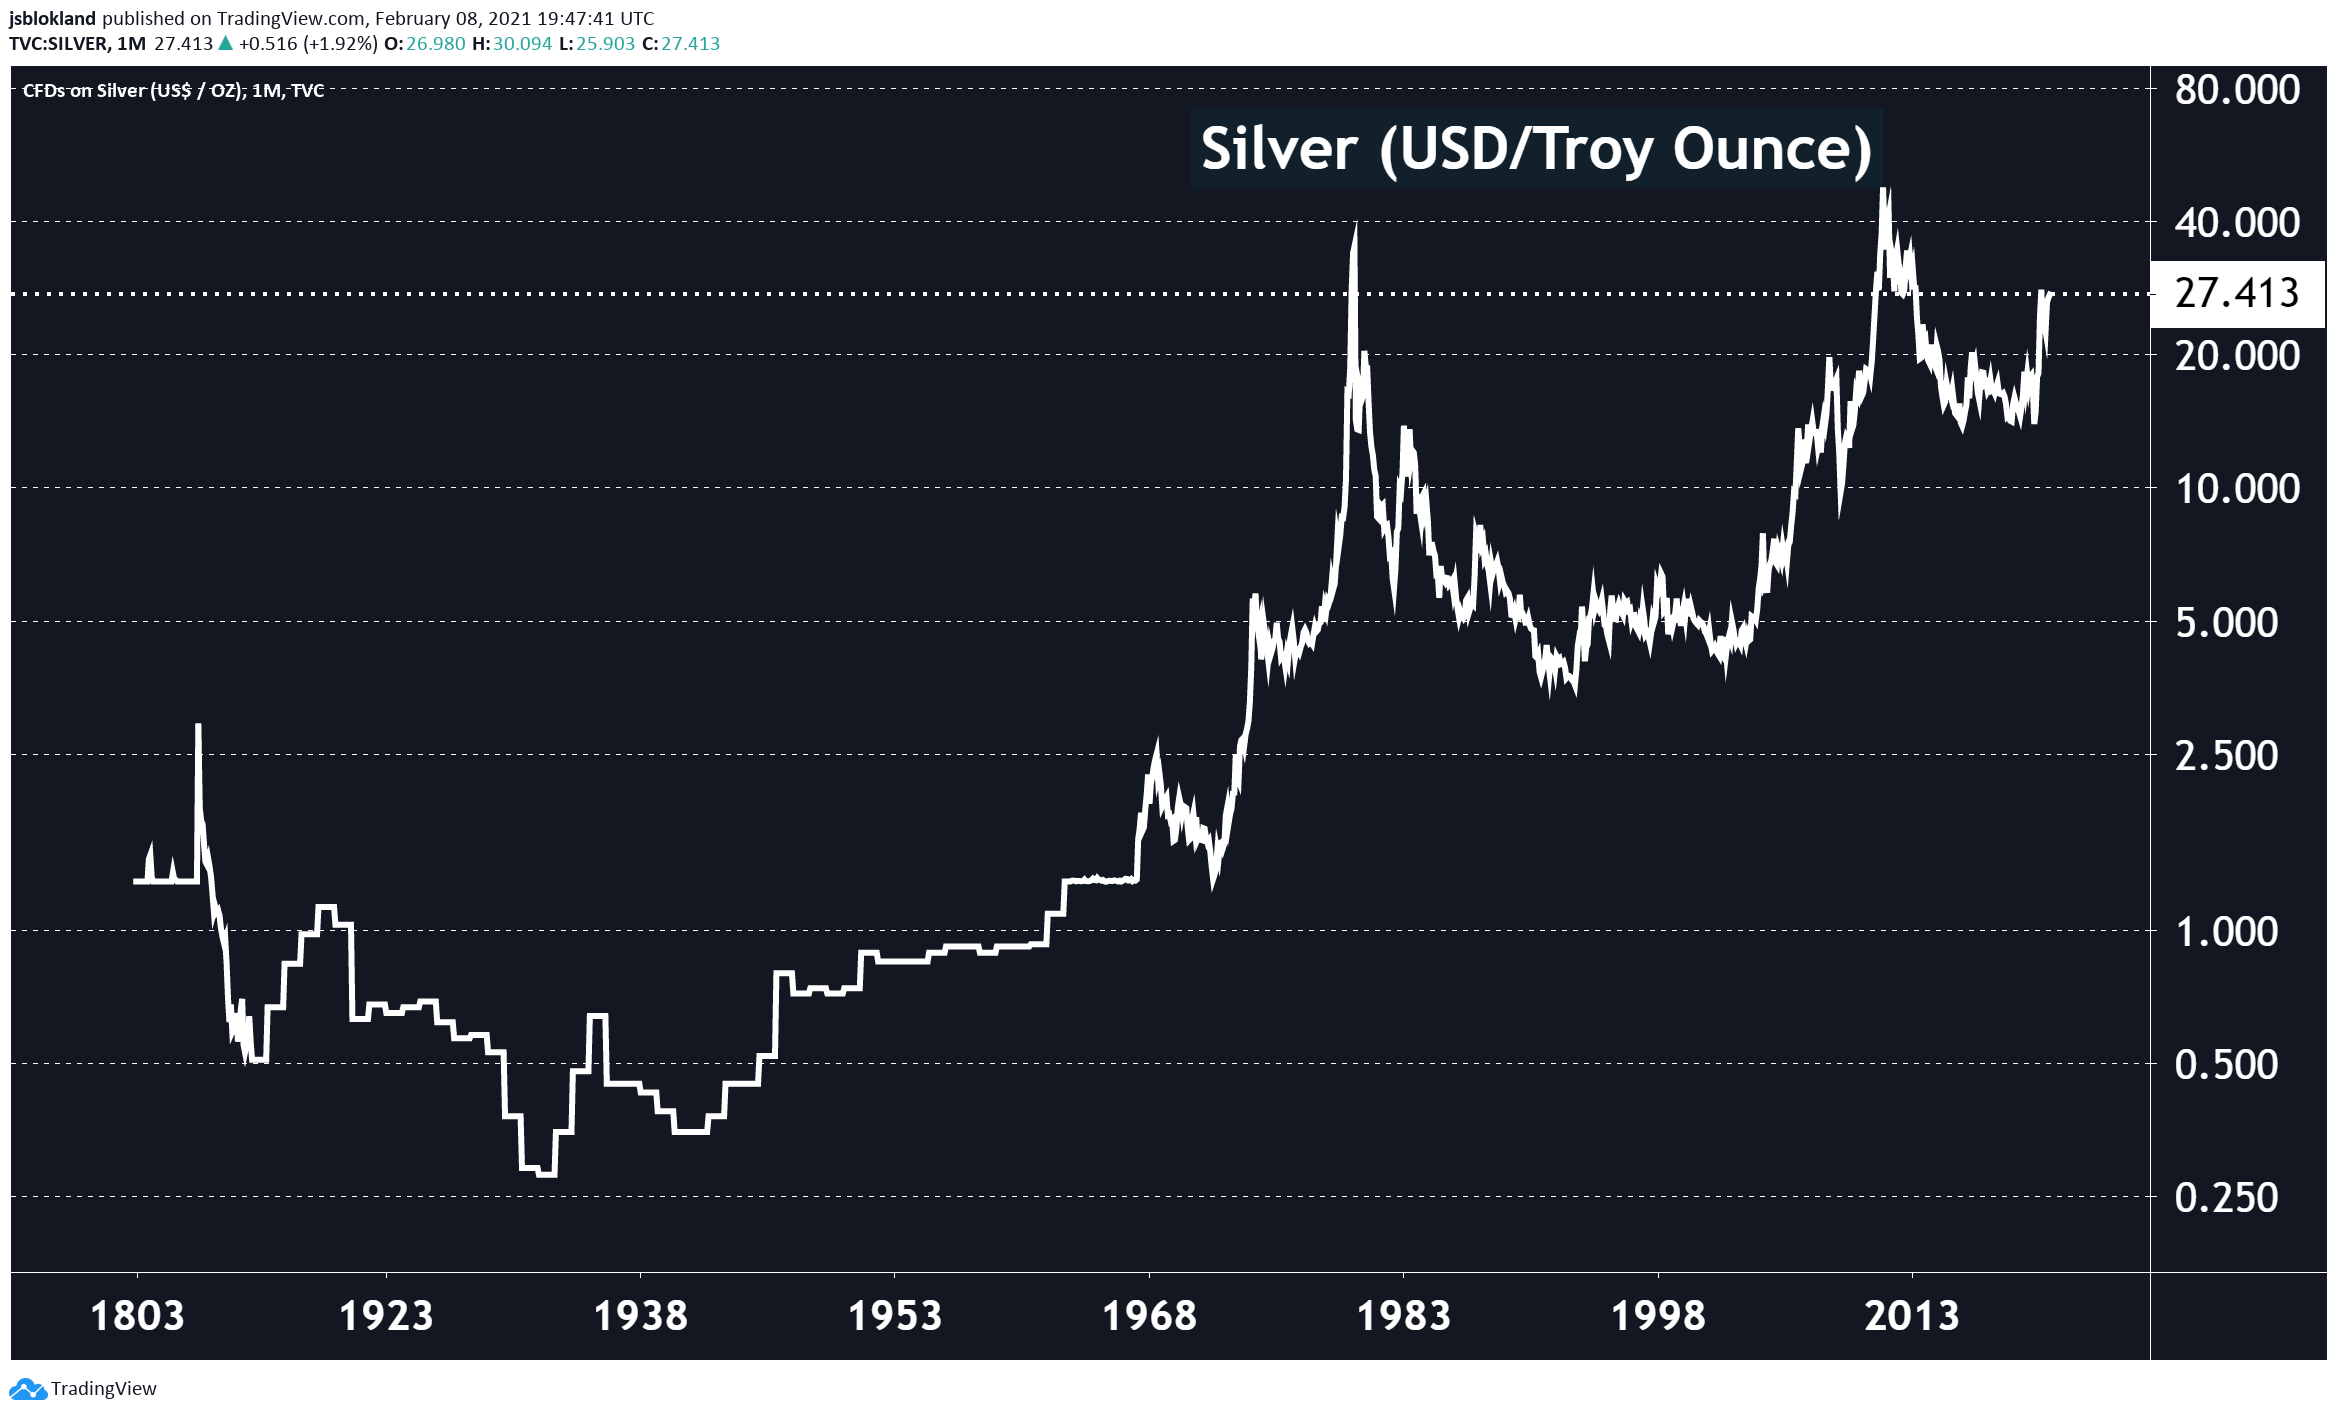 Silver evolution since 1803